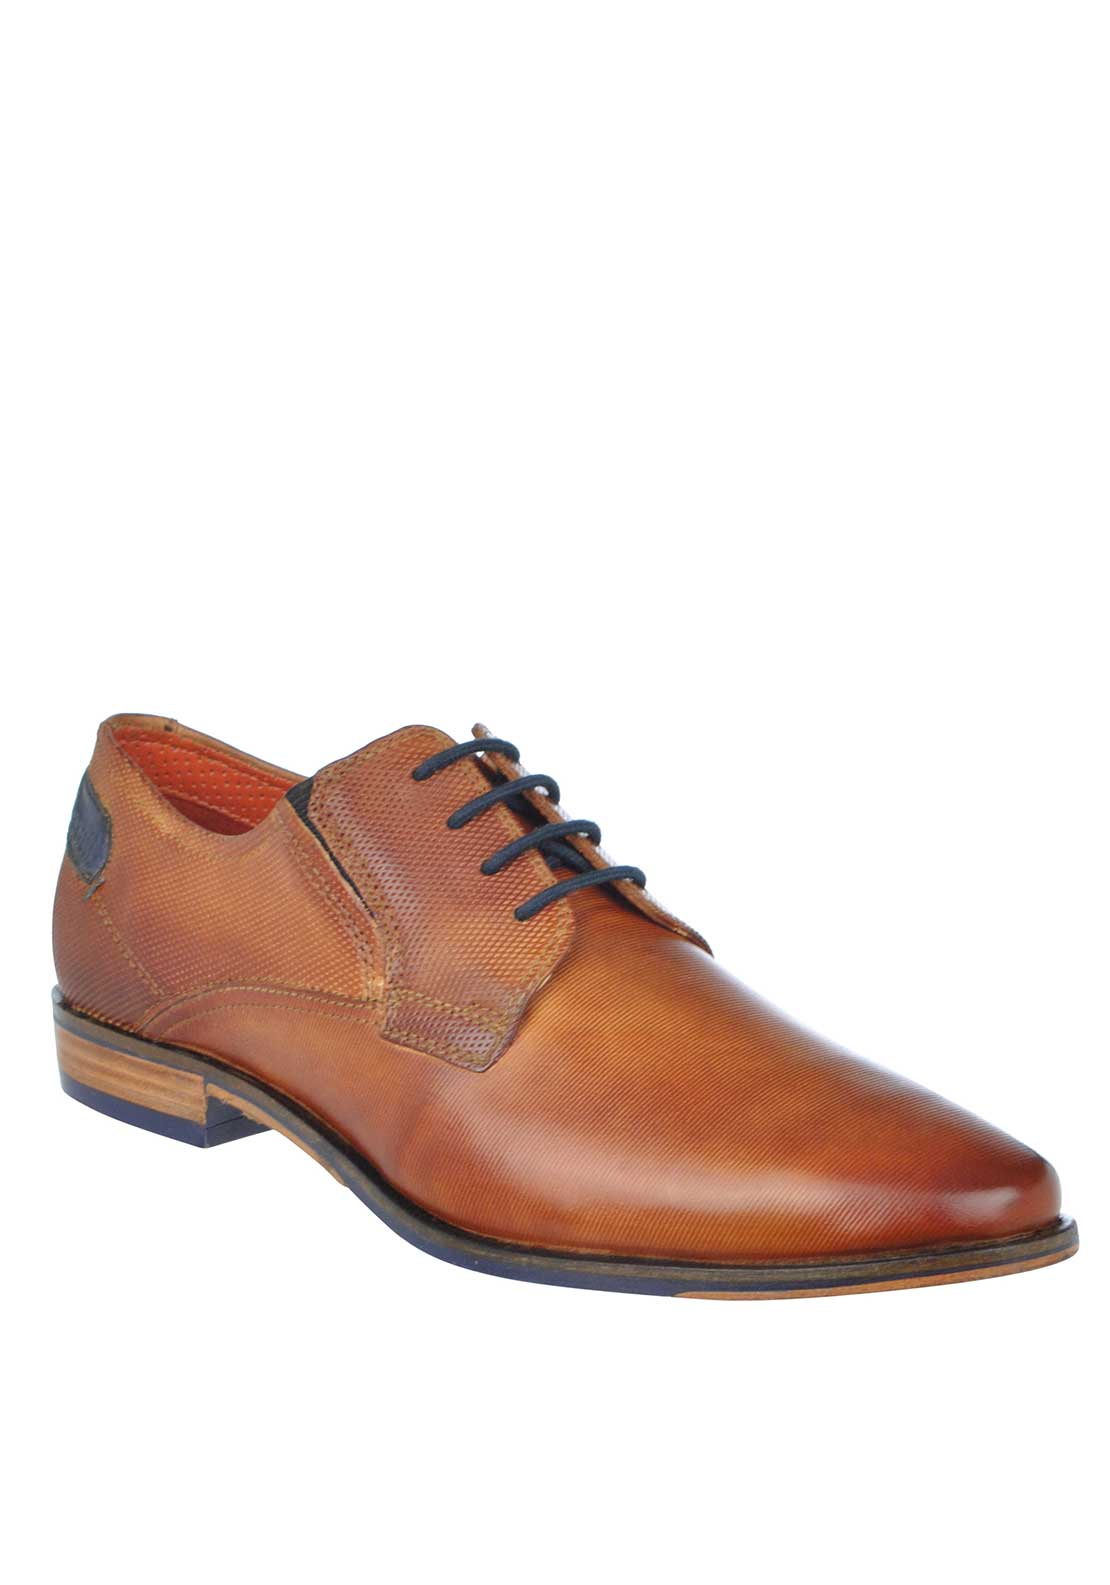 Bugatti Textured Lace Up Leather Shoes, Tan